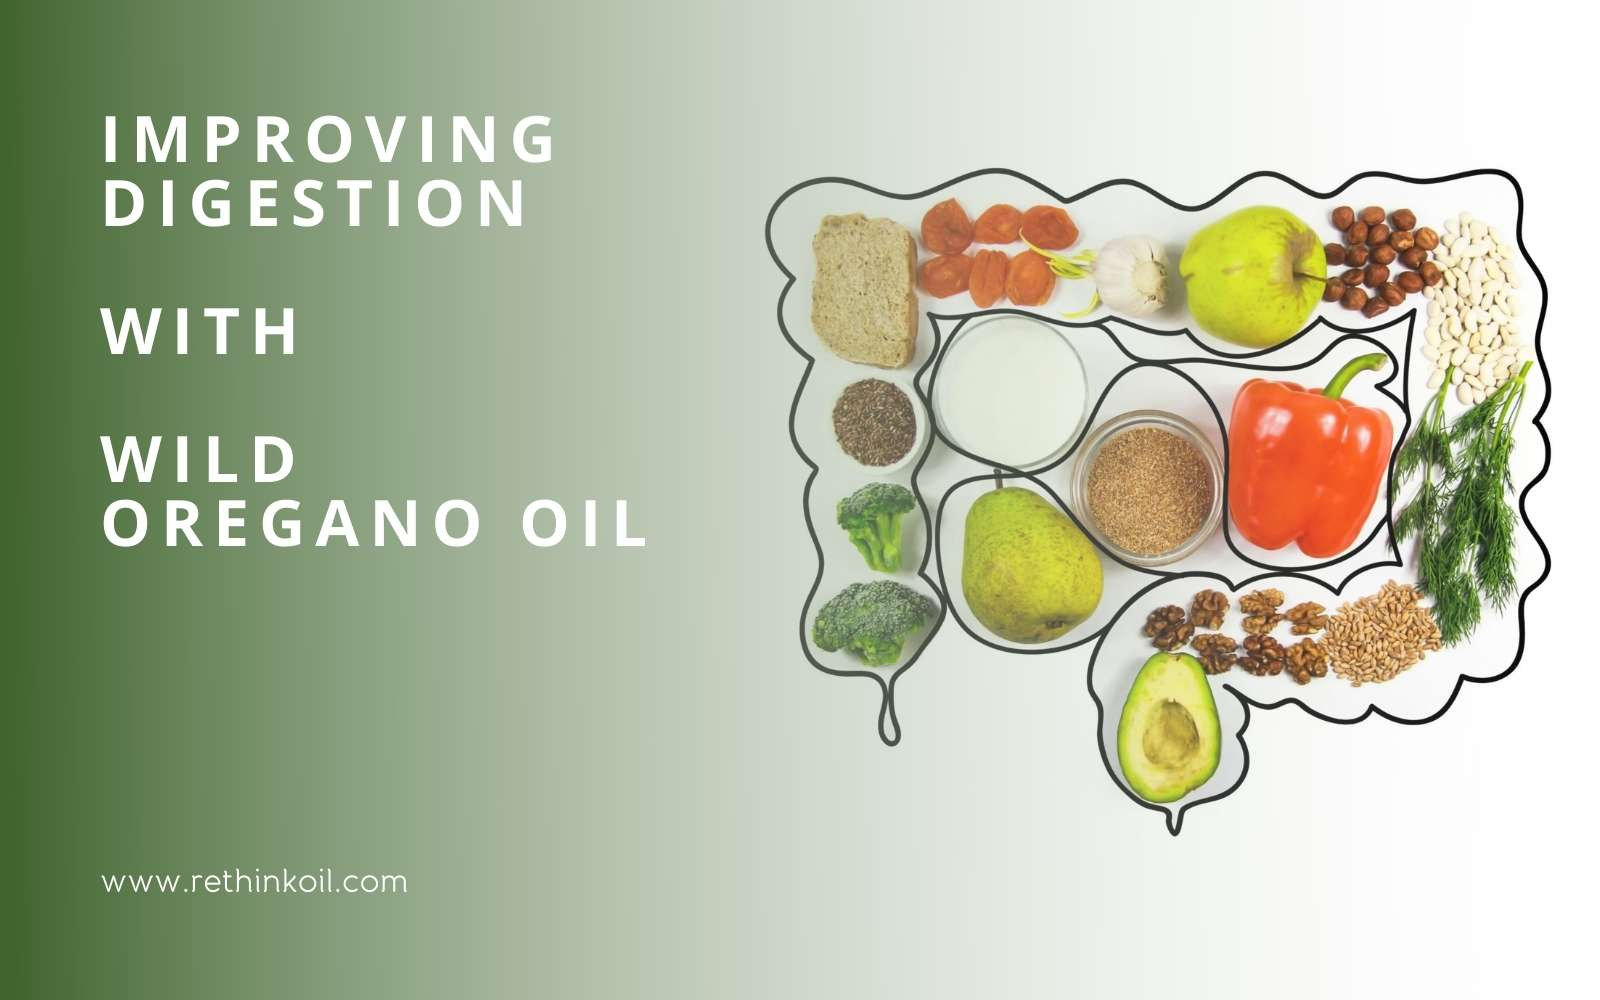 ReThinkOil Blog Improving Digestion with Wild Oregano Oil